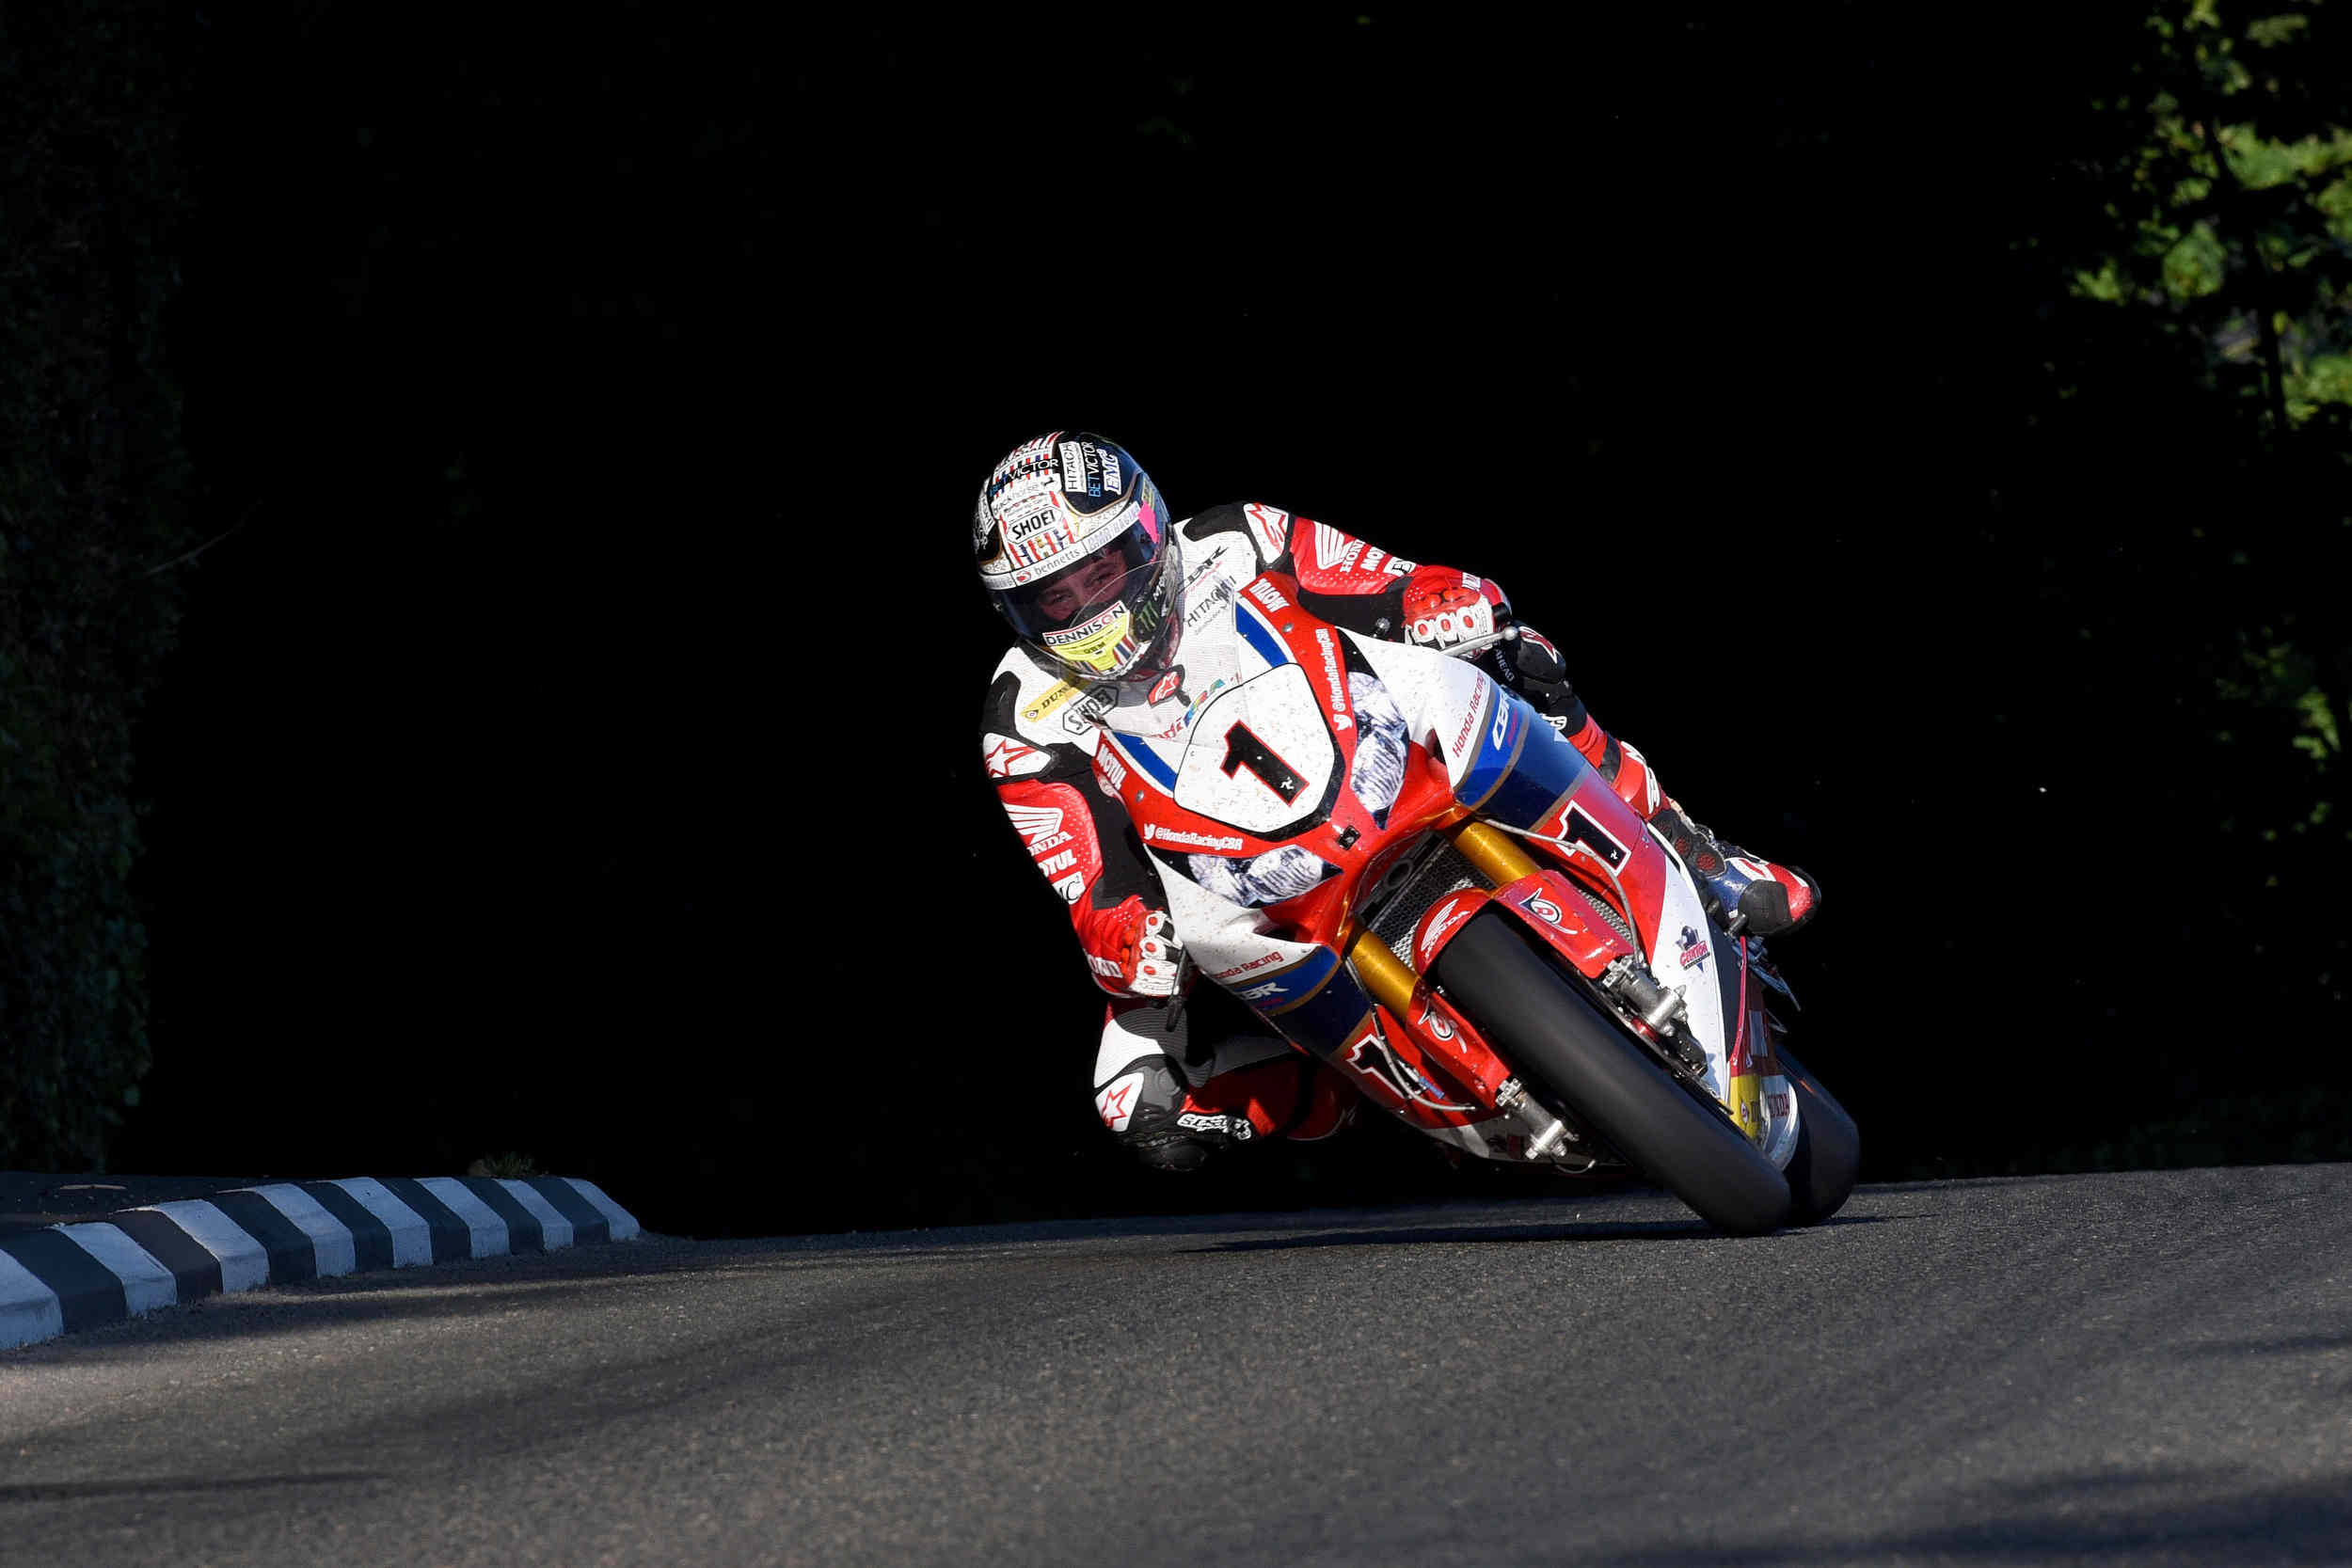 TT 2016 qualifying - John McGuinness